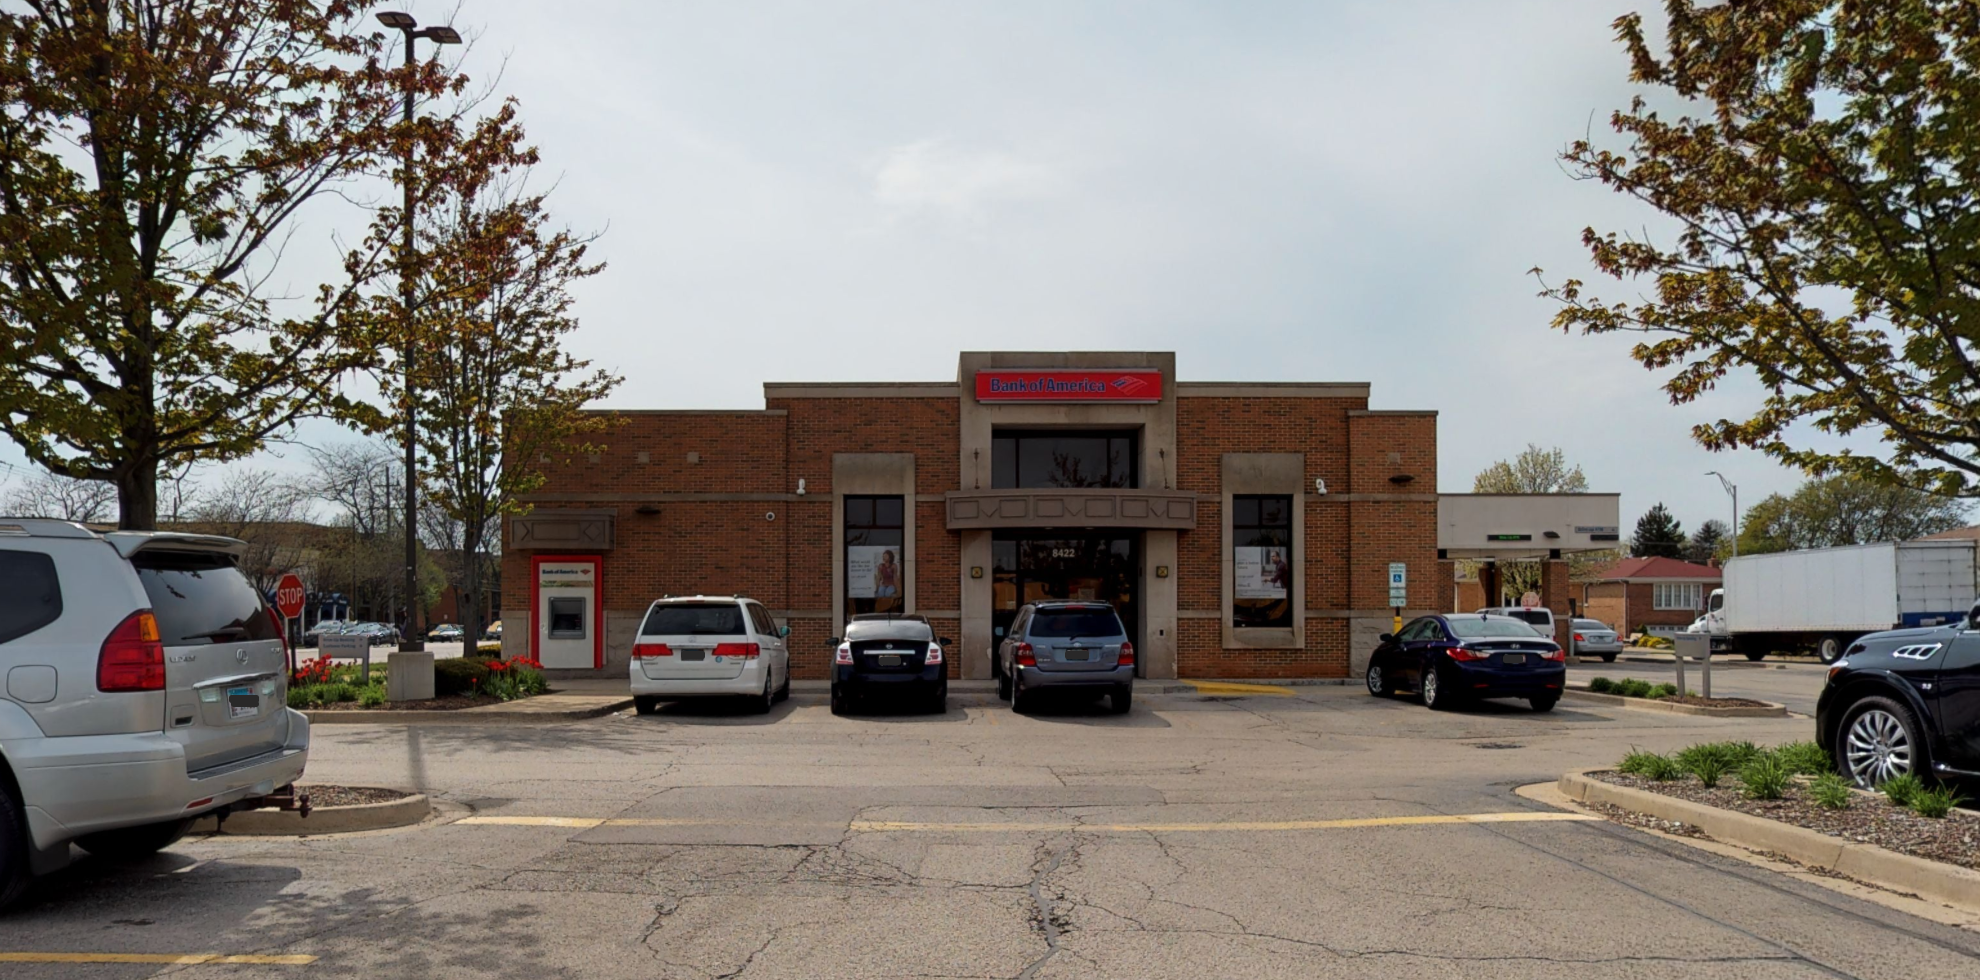 Bank of America financial center with drive-thru ATM   8422 W Lawrence Ave, Norridge, IL 60706